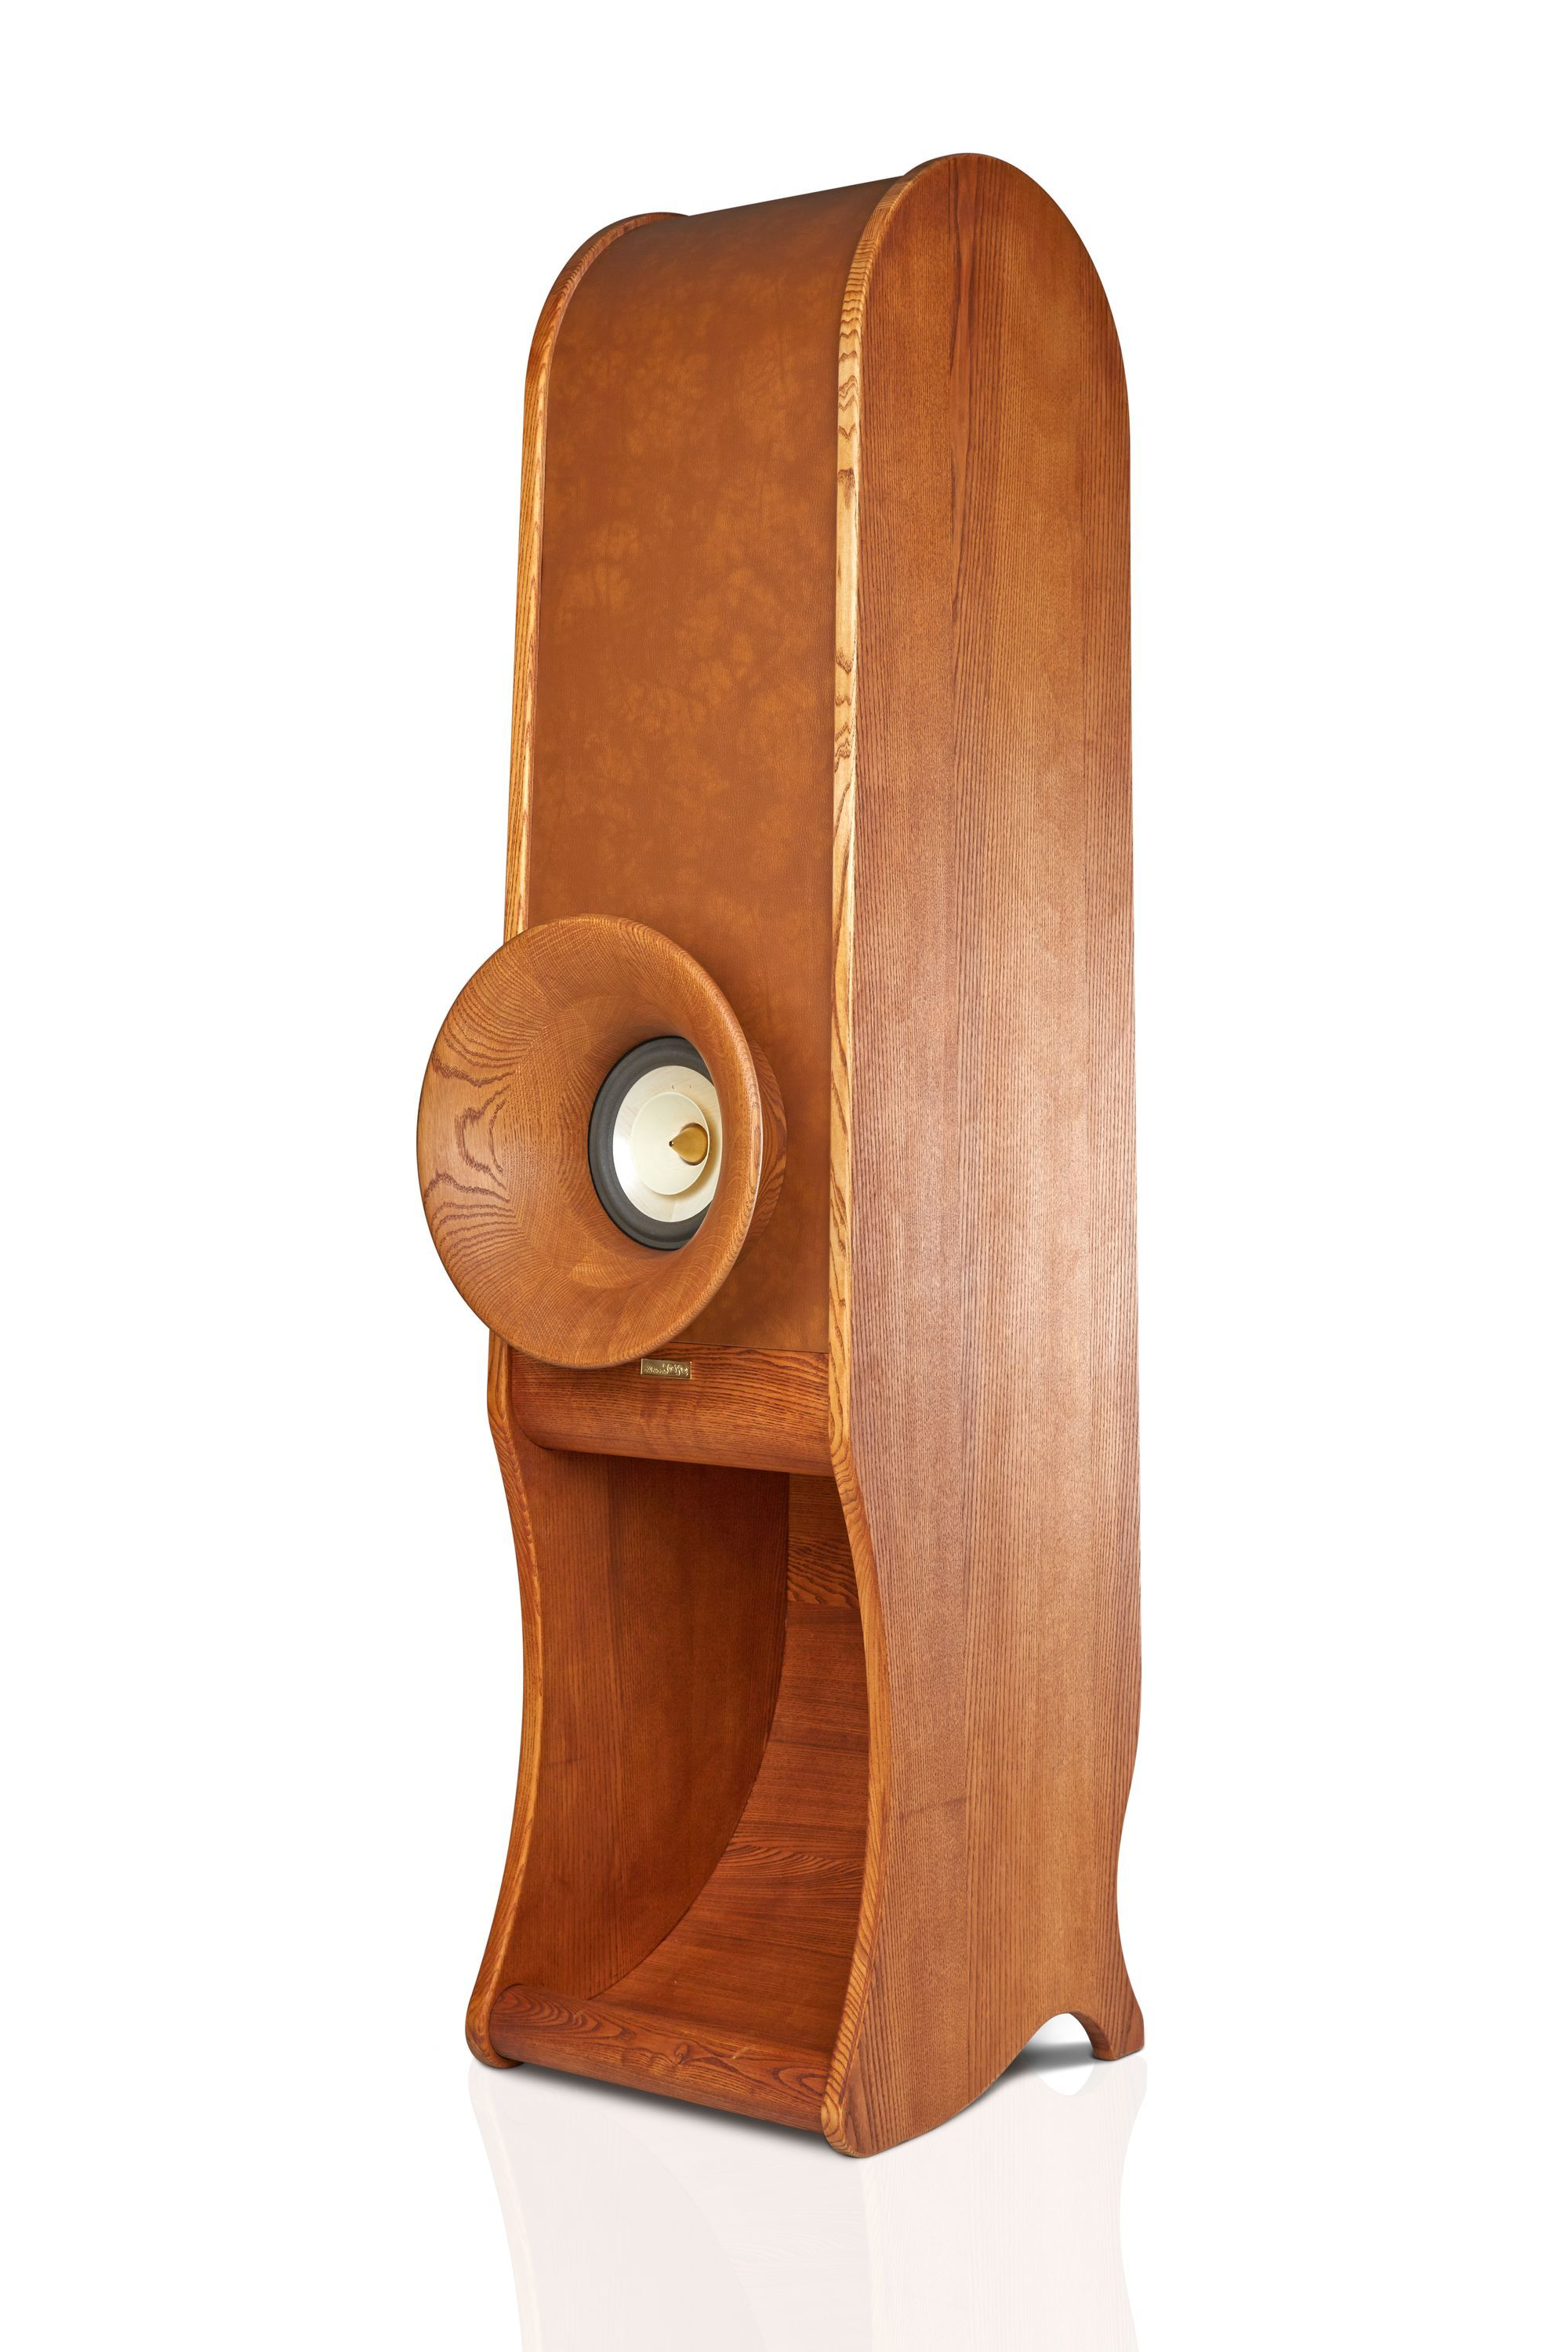 http://www.rdacoustic.cz/wp-content/uploads/RDacoustic_Evolution_Wooden_Oak2_left.jpg